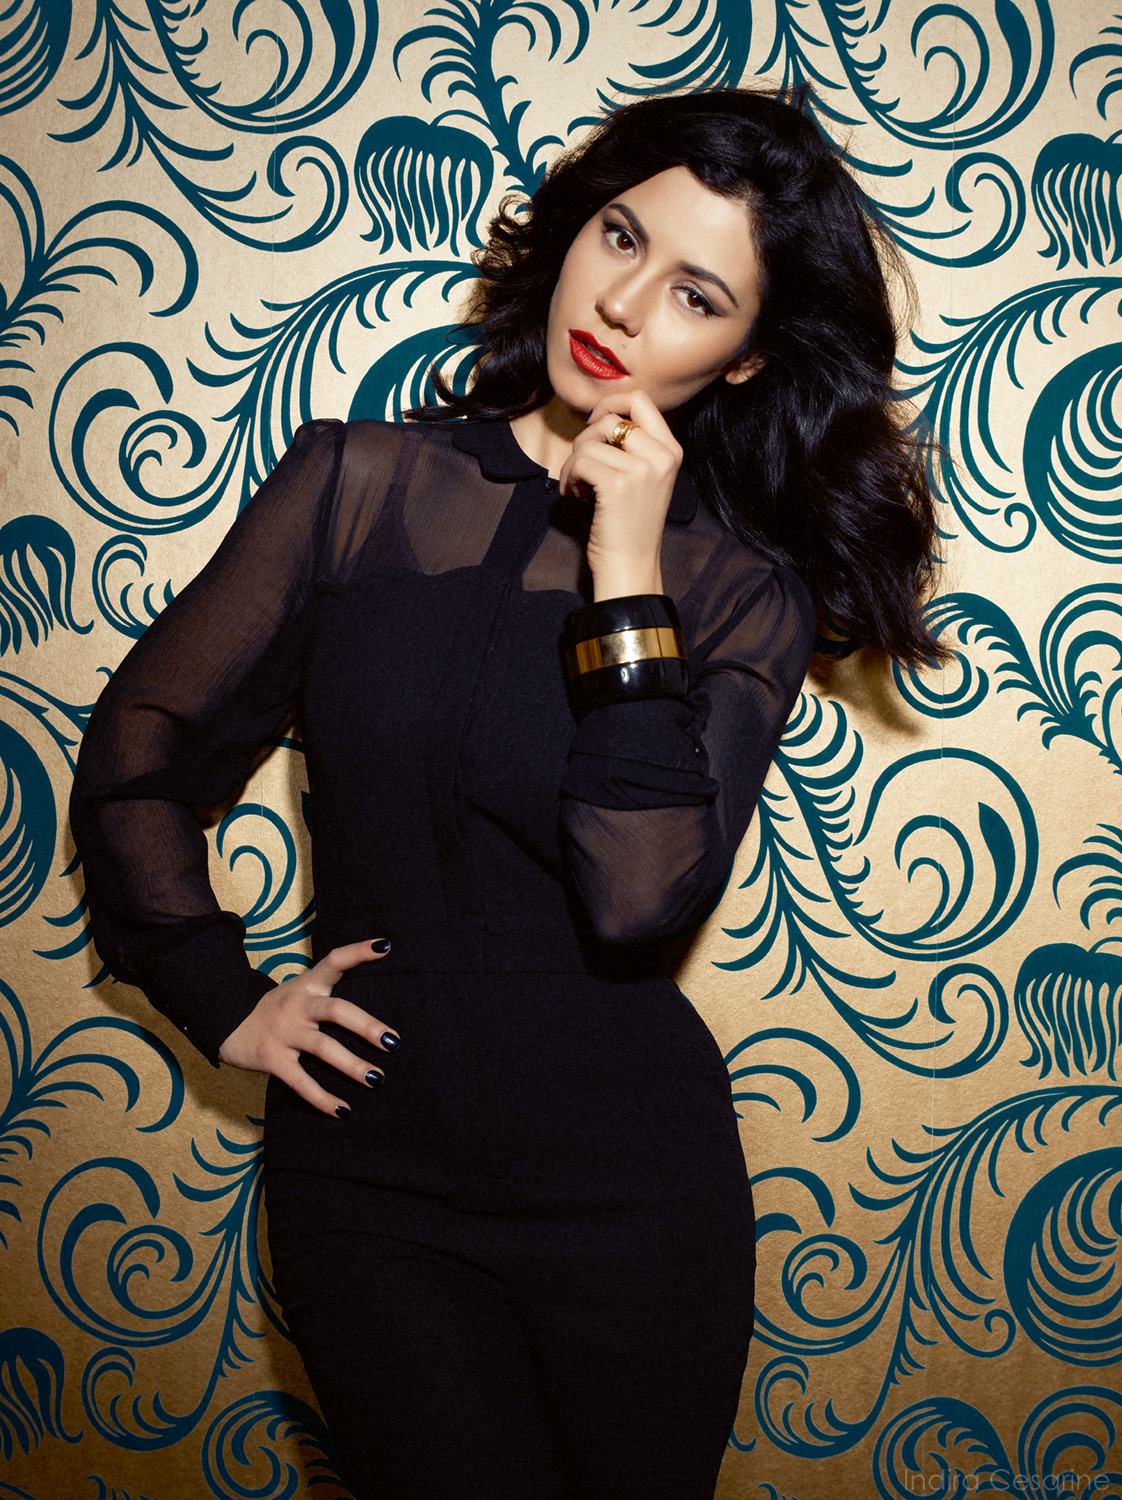 Marina-Diamonds-Photography-Indira-Cesarine-008.jpg